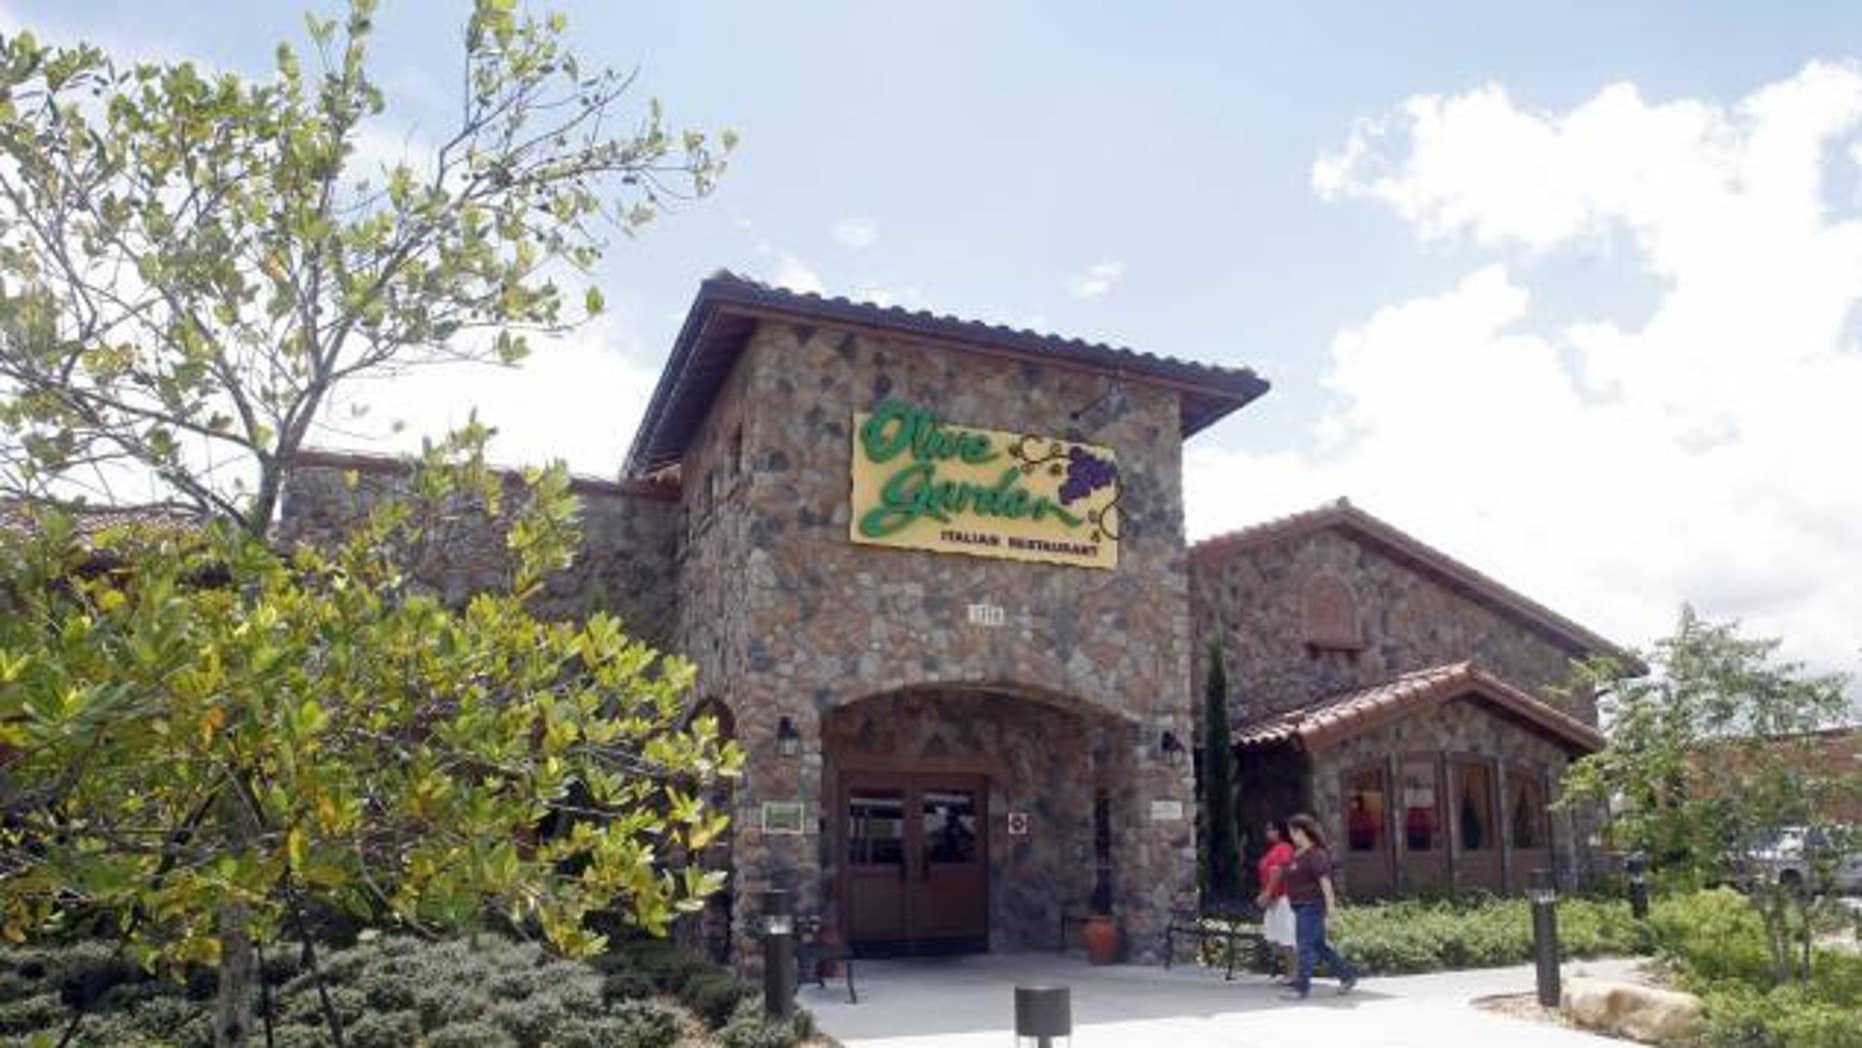 Olive Garden will cut down on carpet cleaning to save costs.